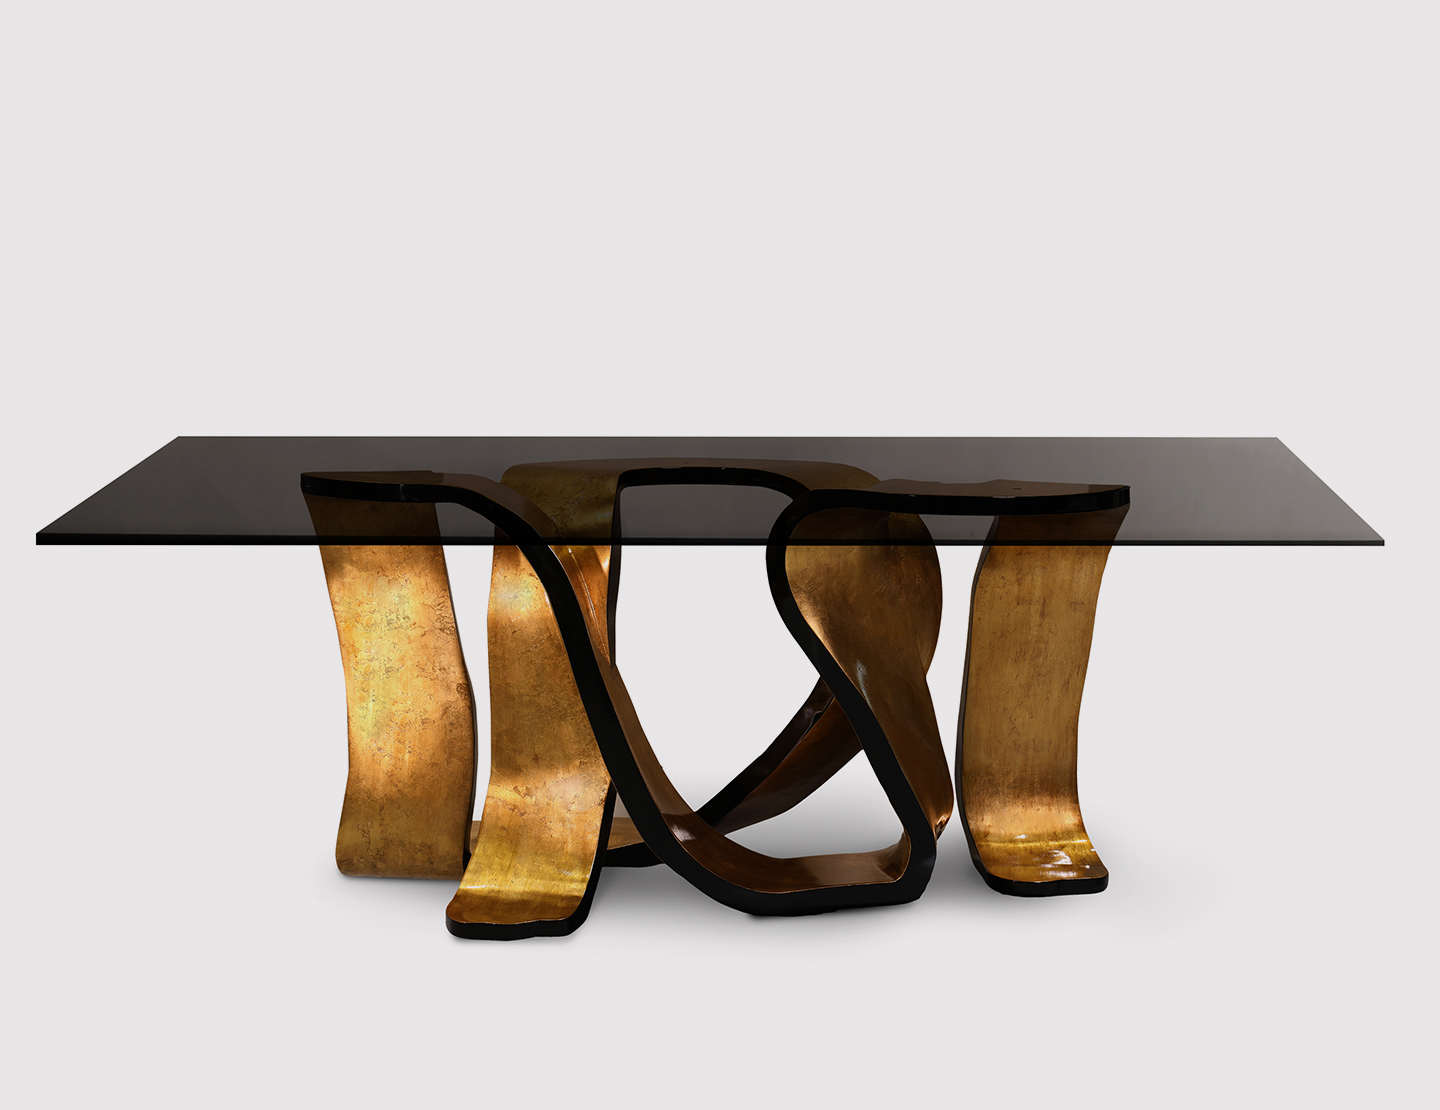 ribbon dining table chic koket zoom big gold accent globe lighting portland bathtub extra long runners living room ideas home goods sets round patio winsome wood with wheels inch